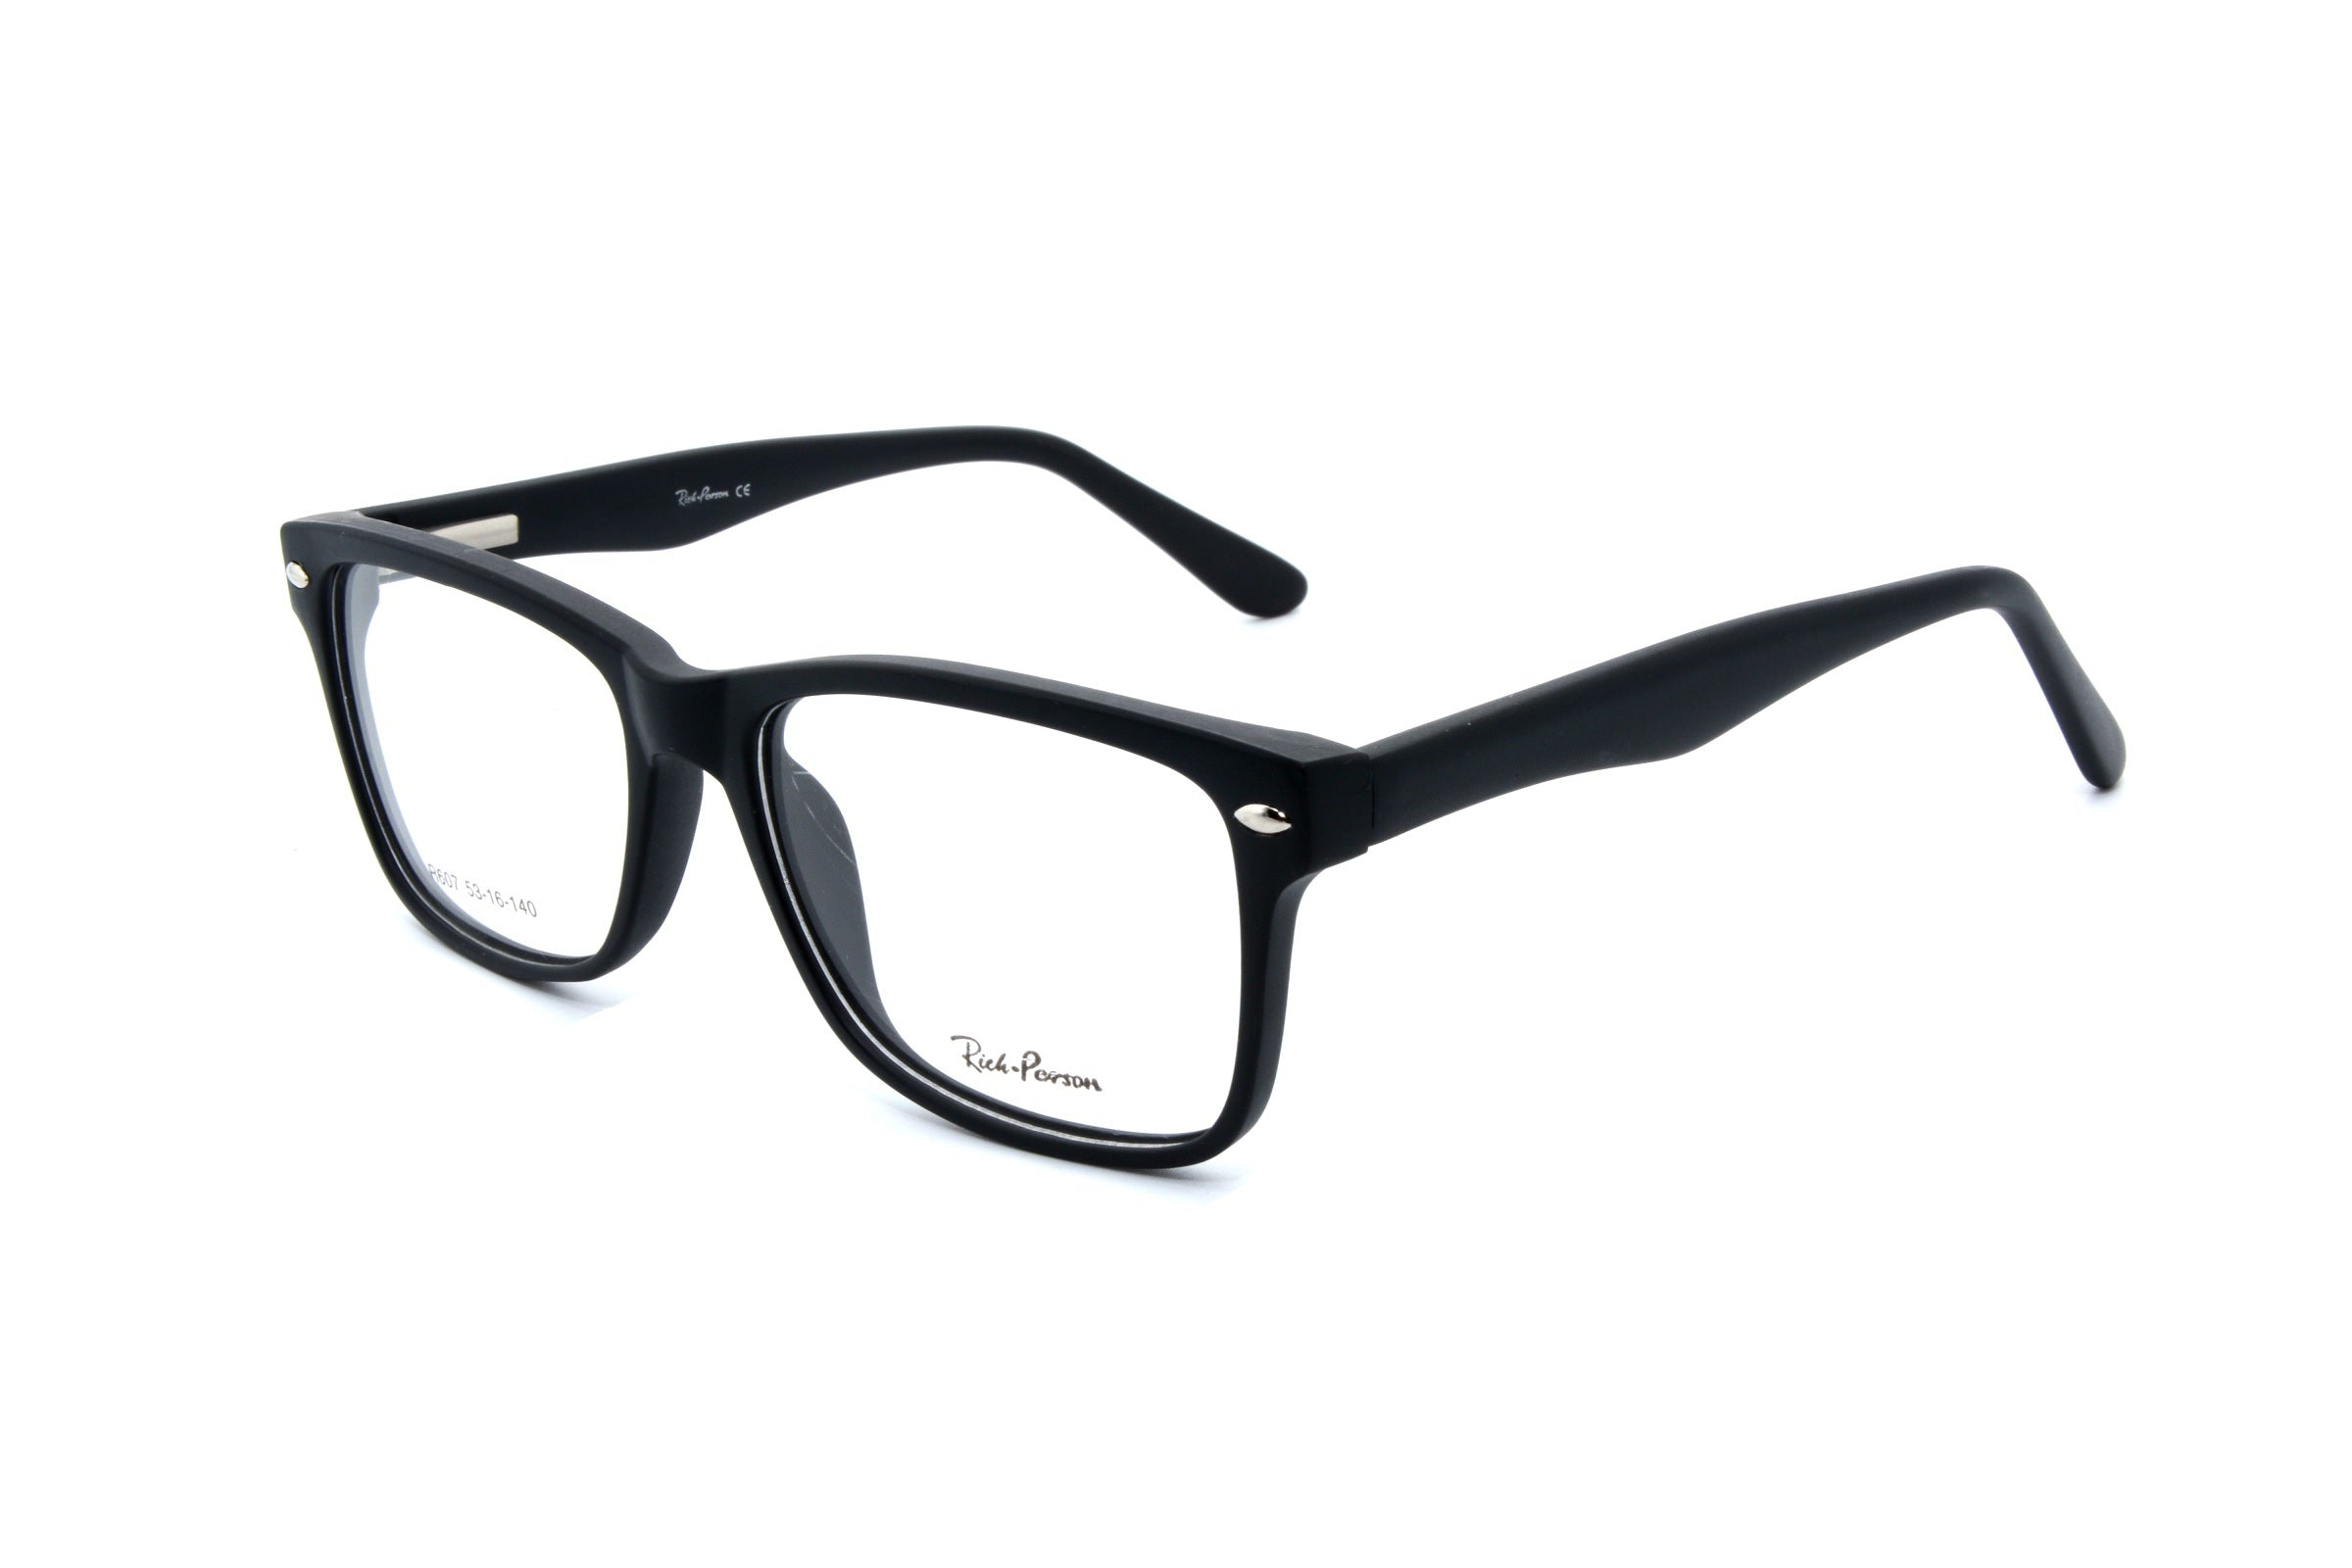 Rich person eyewear R607, A5 - Optics Trading